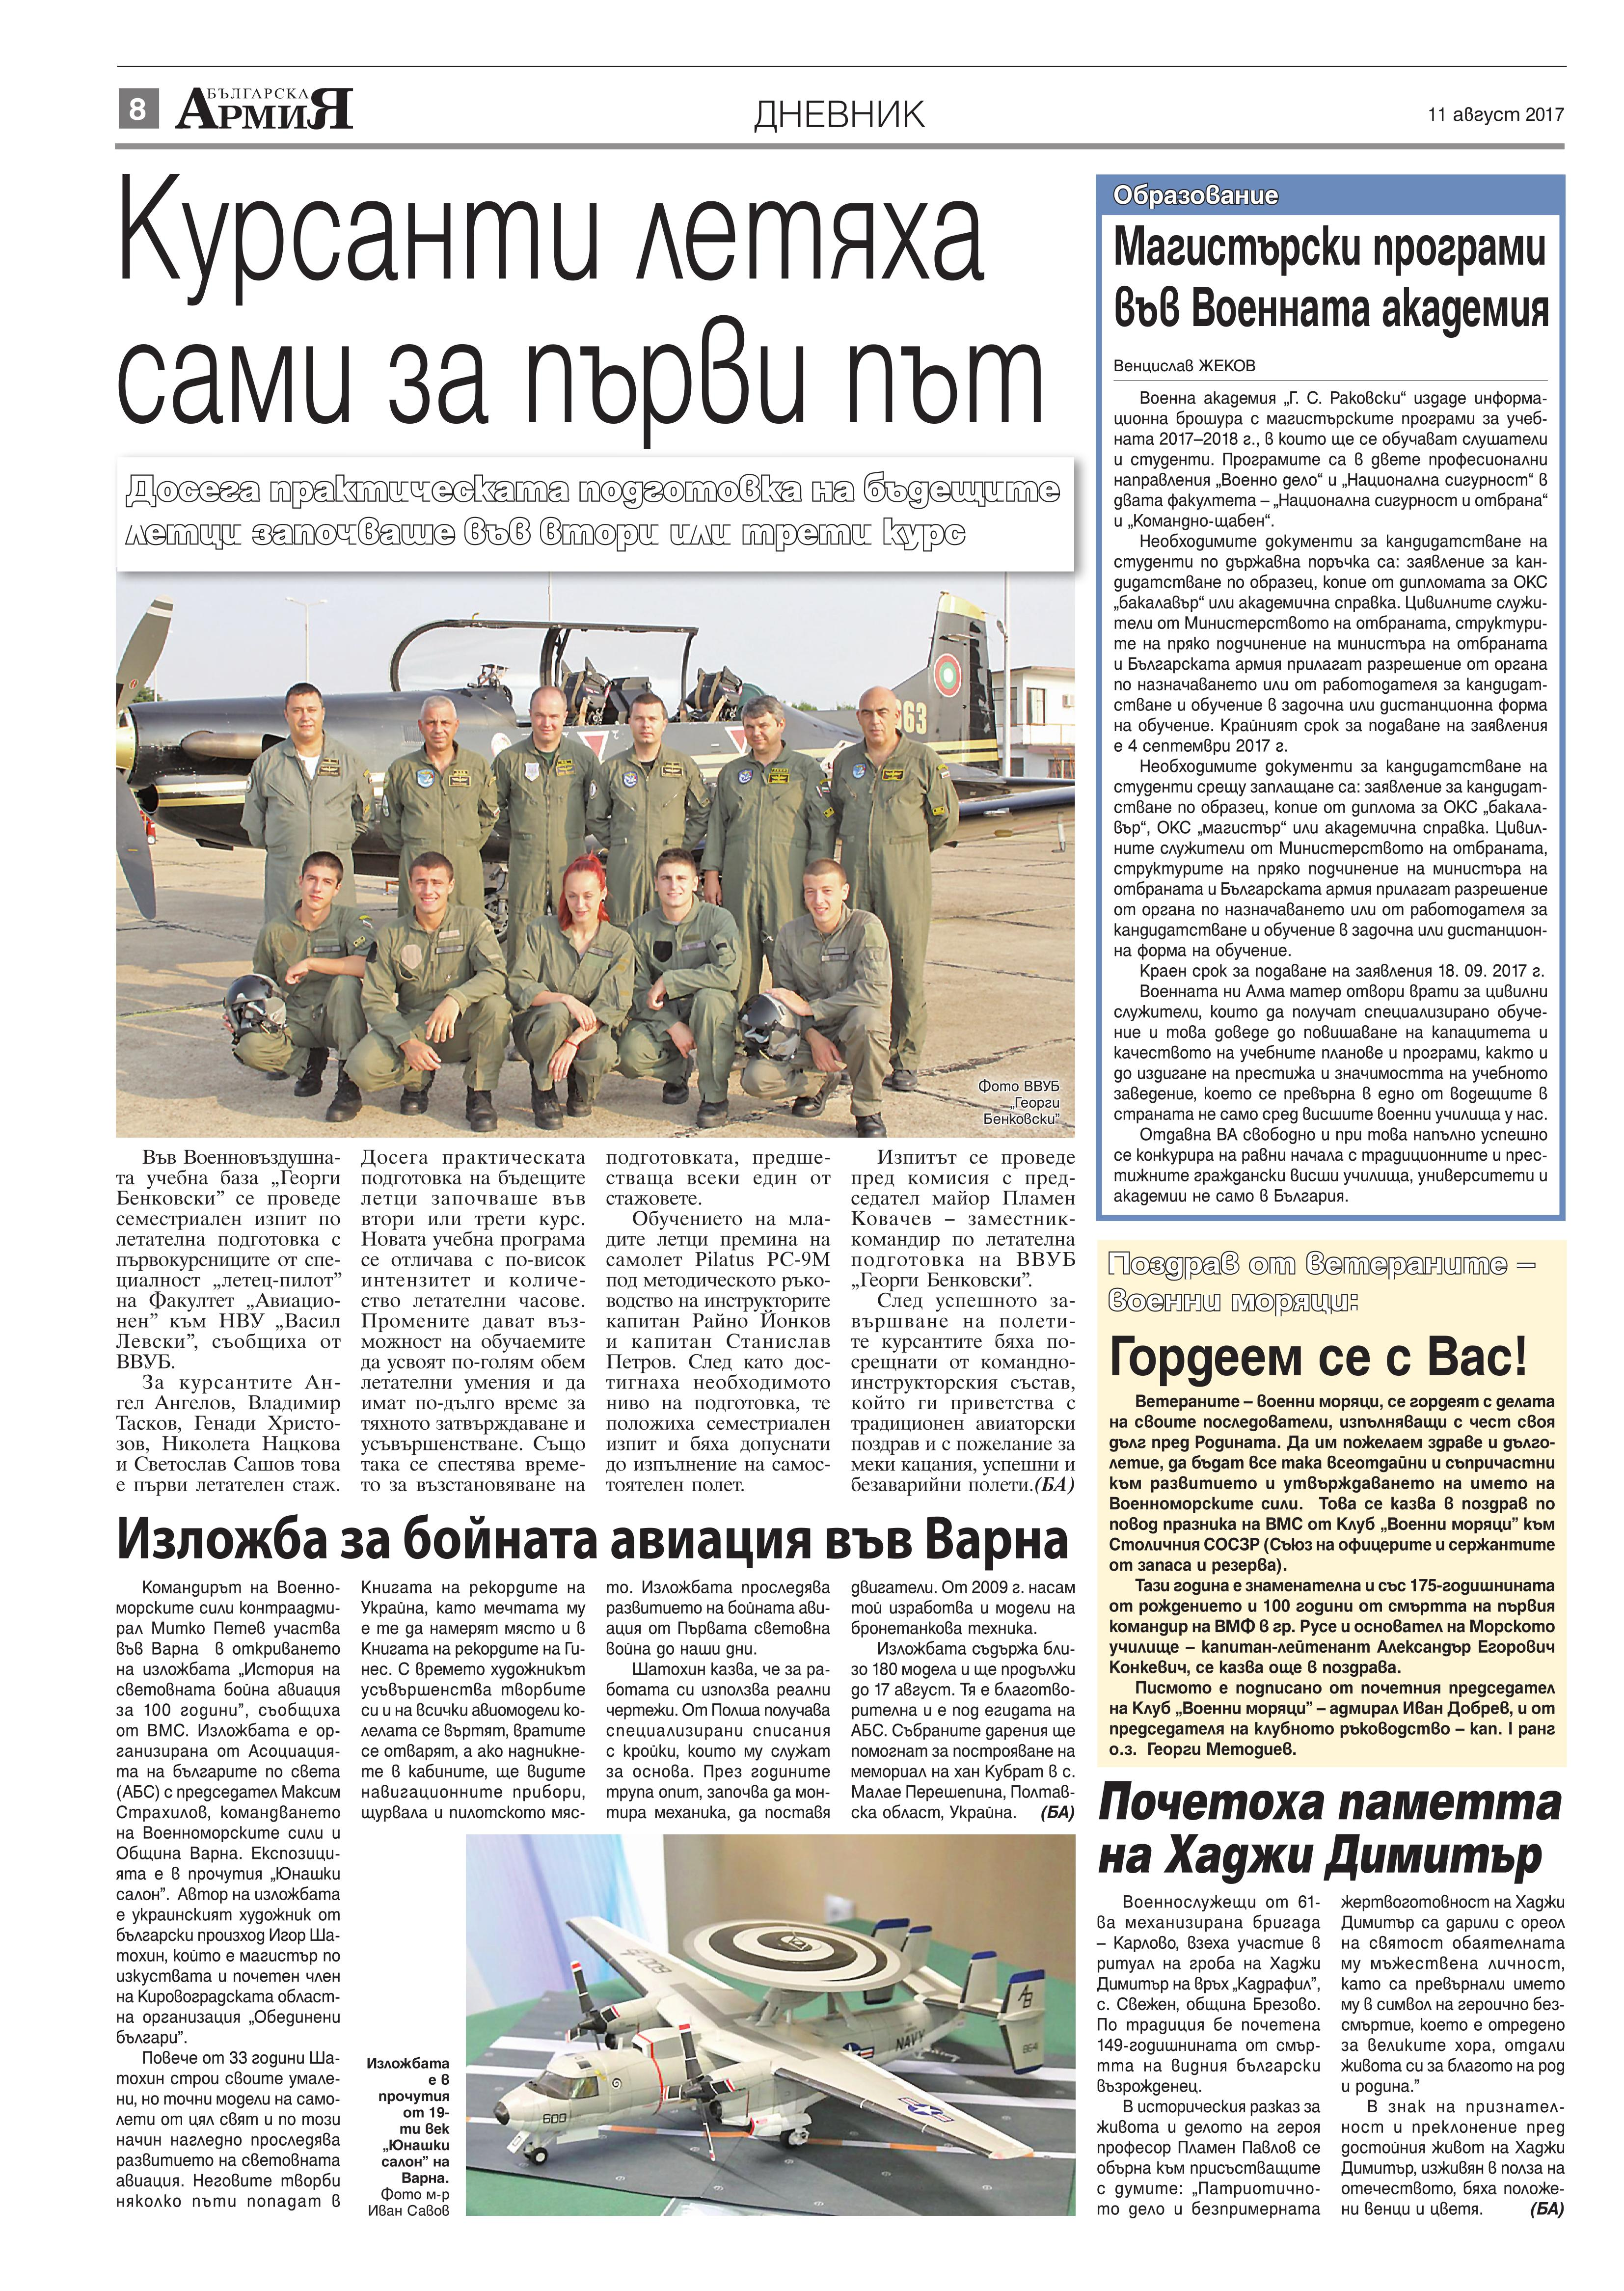 http://armymedia.bg/wp-content/uploads/2015/06/08.page1_-28.jpg